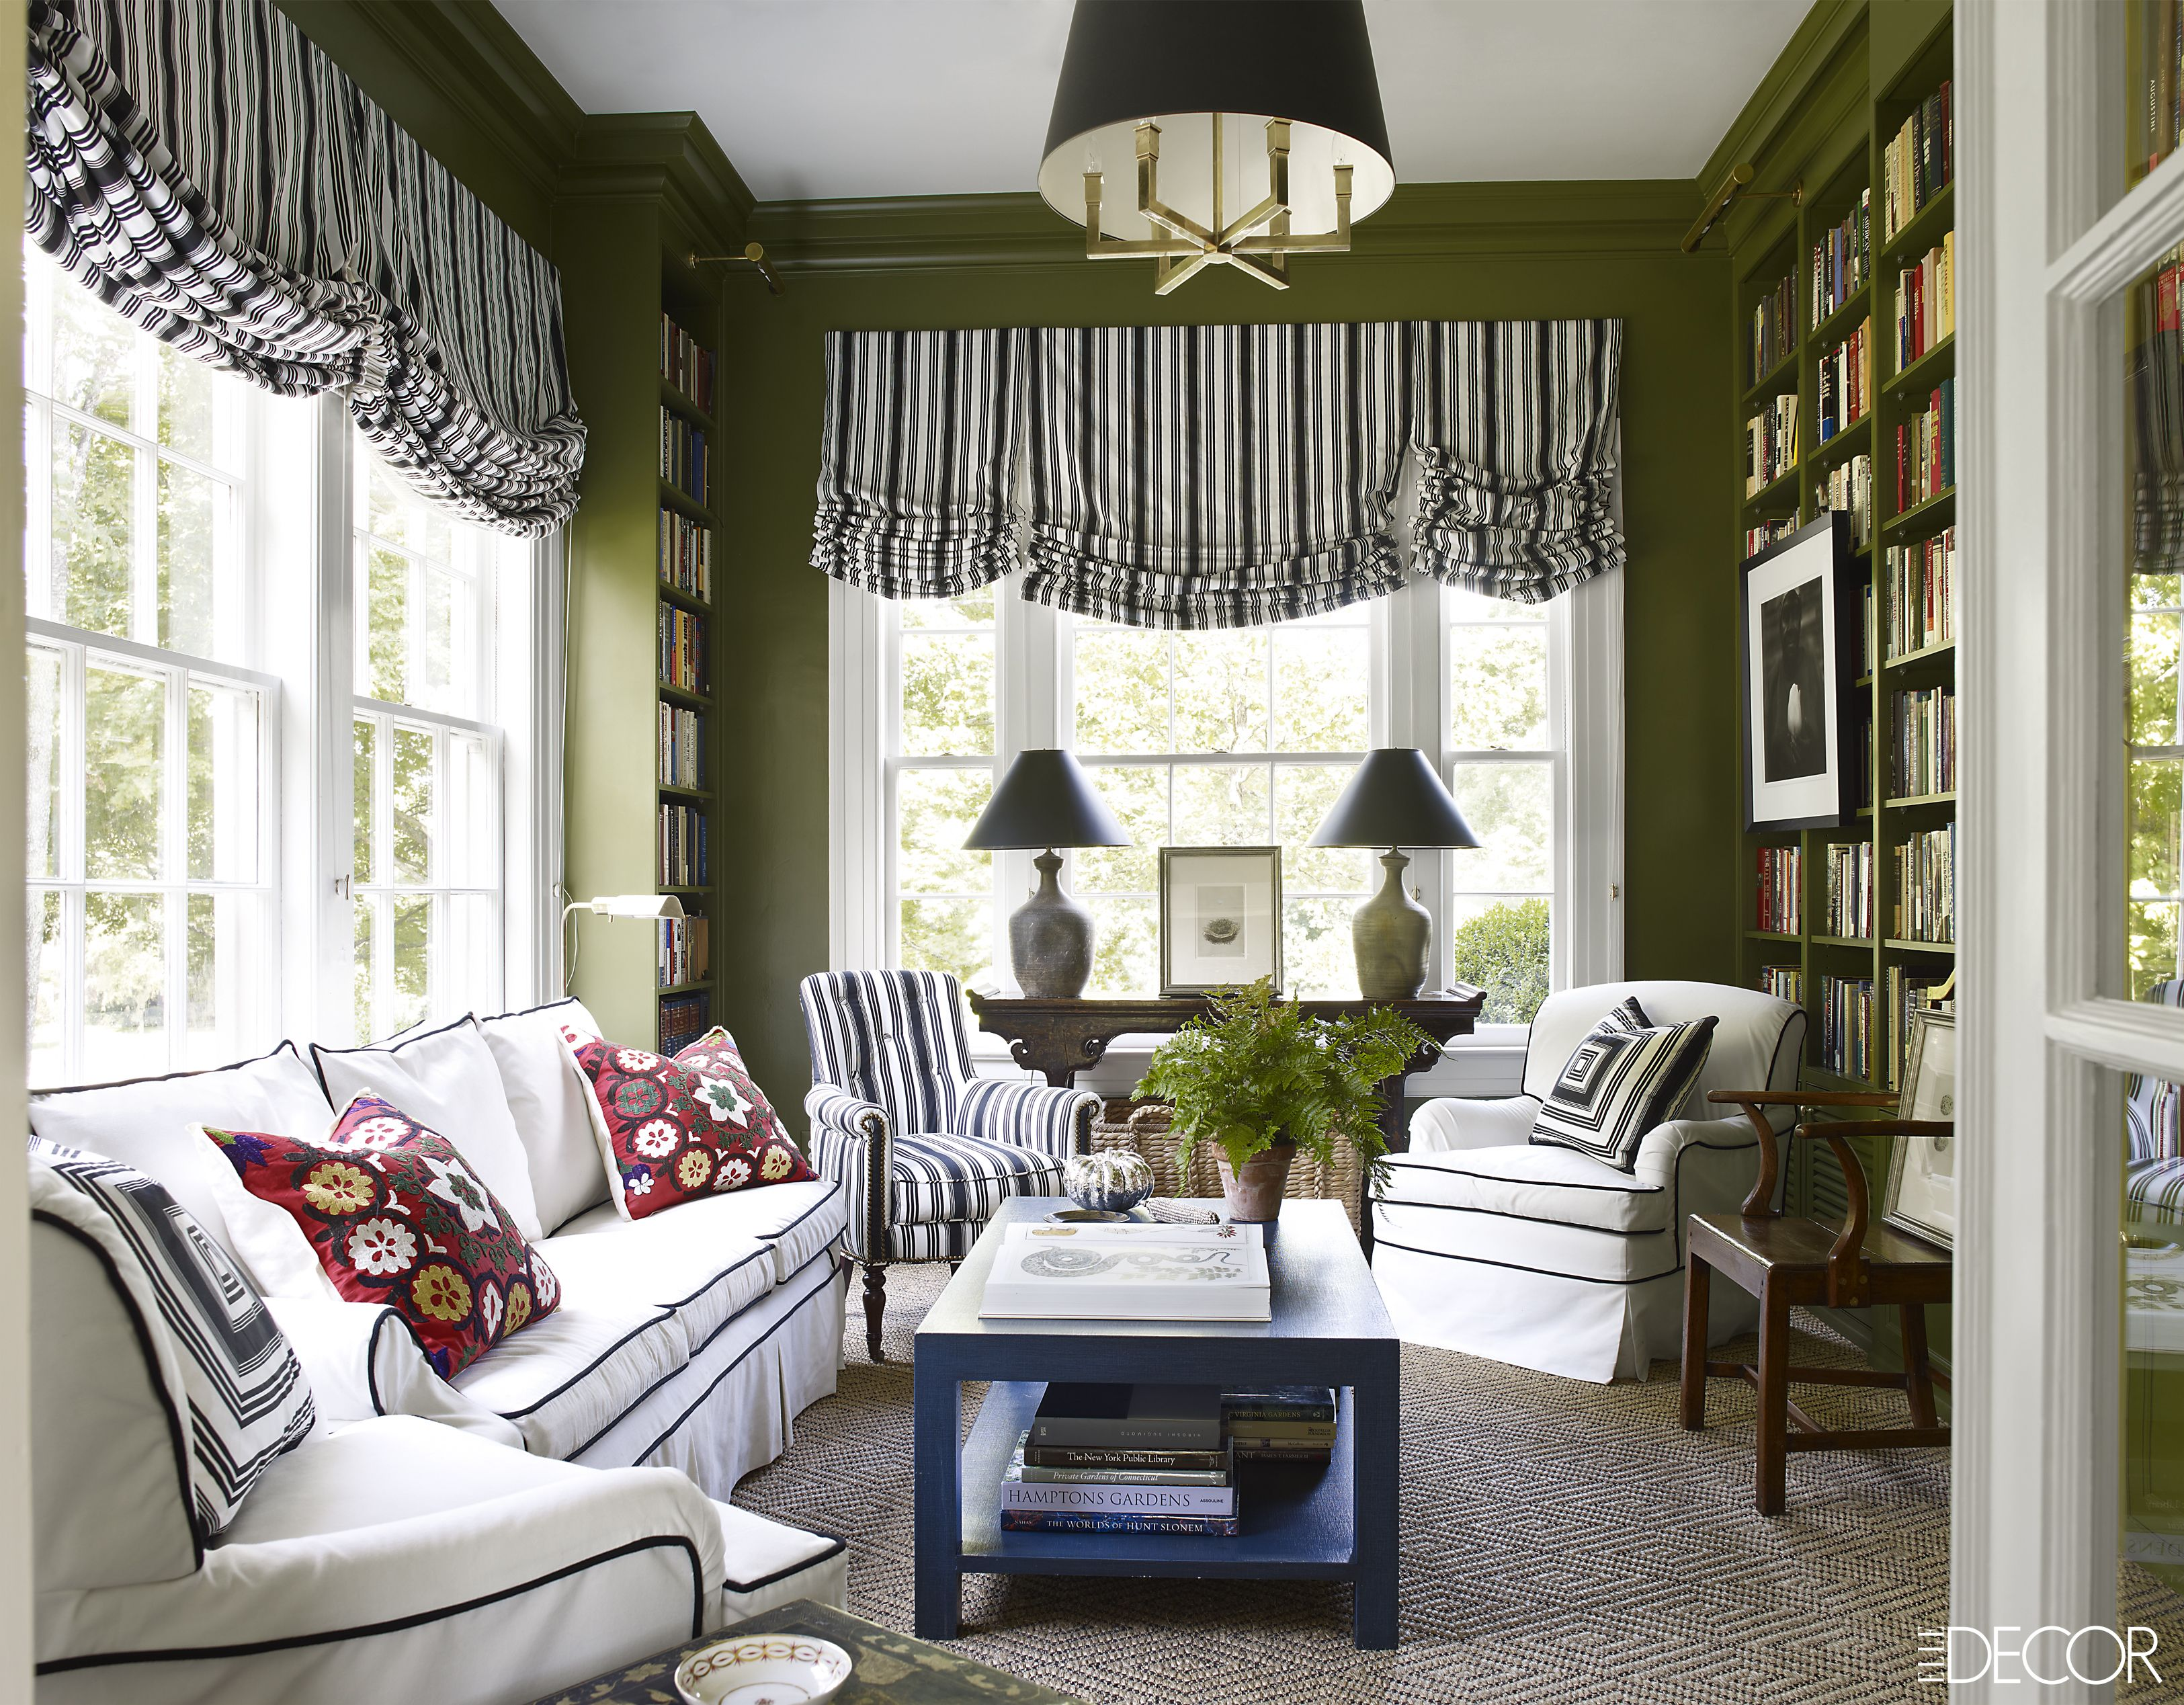 Olive Green Paint Color Decor Ideas Walls Furniture Decorations